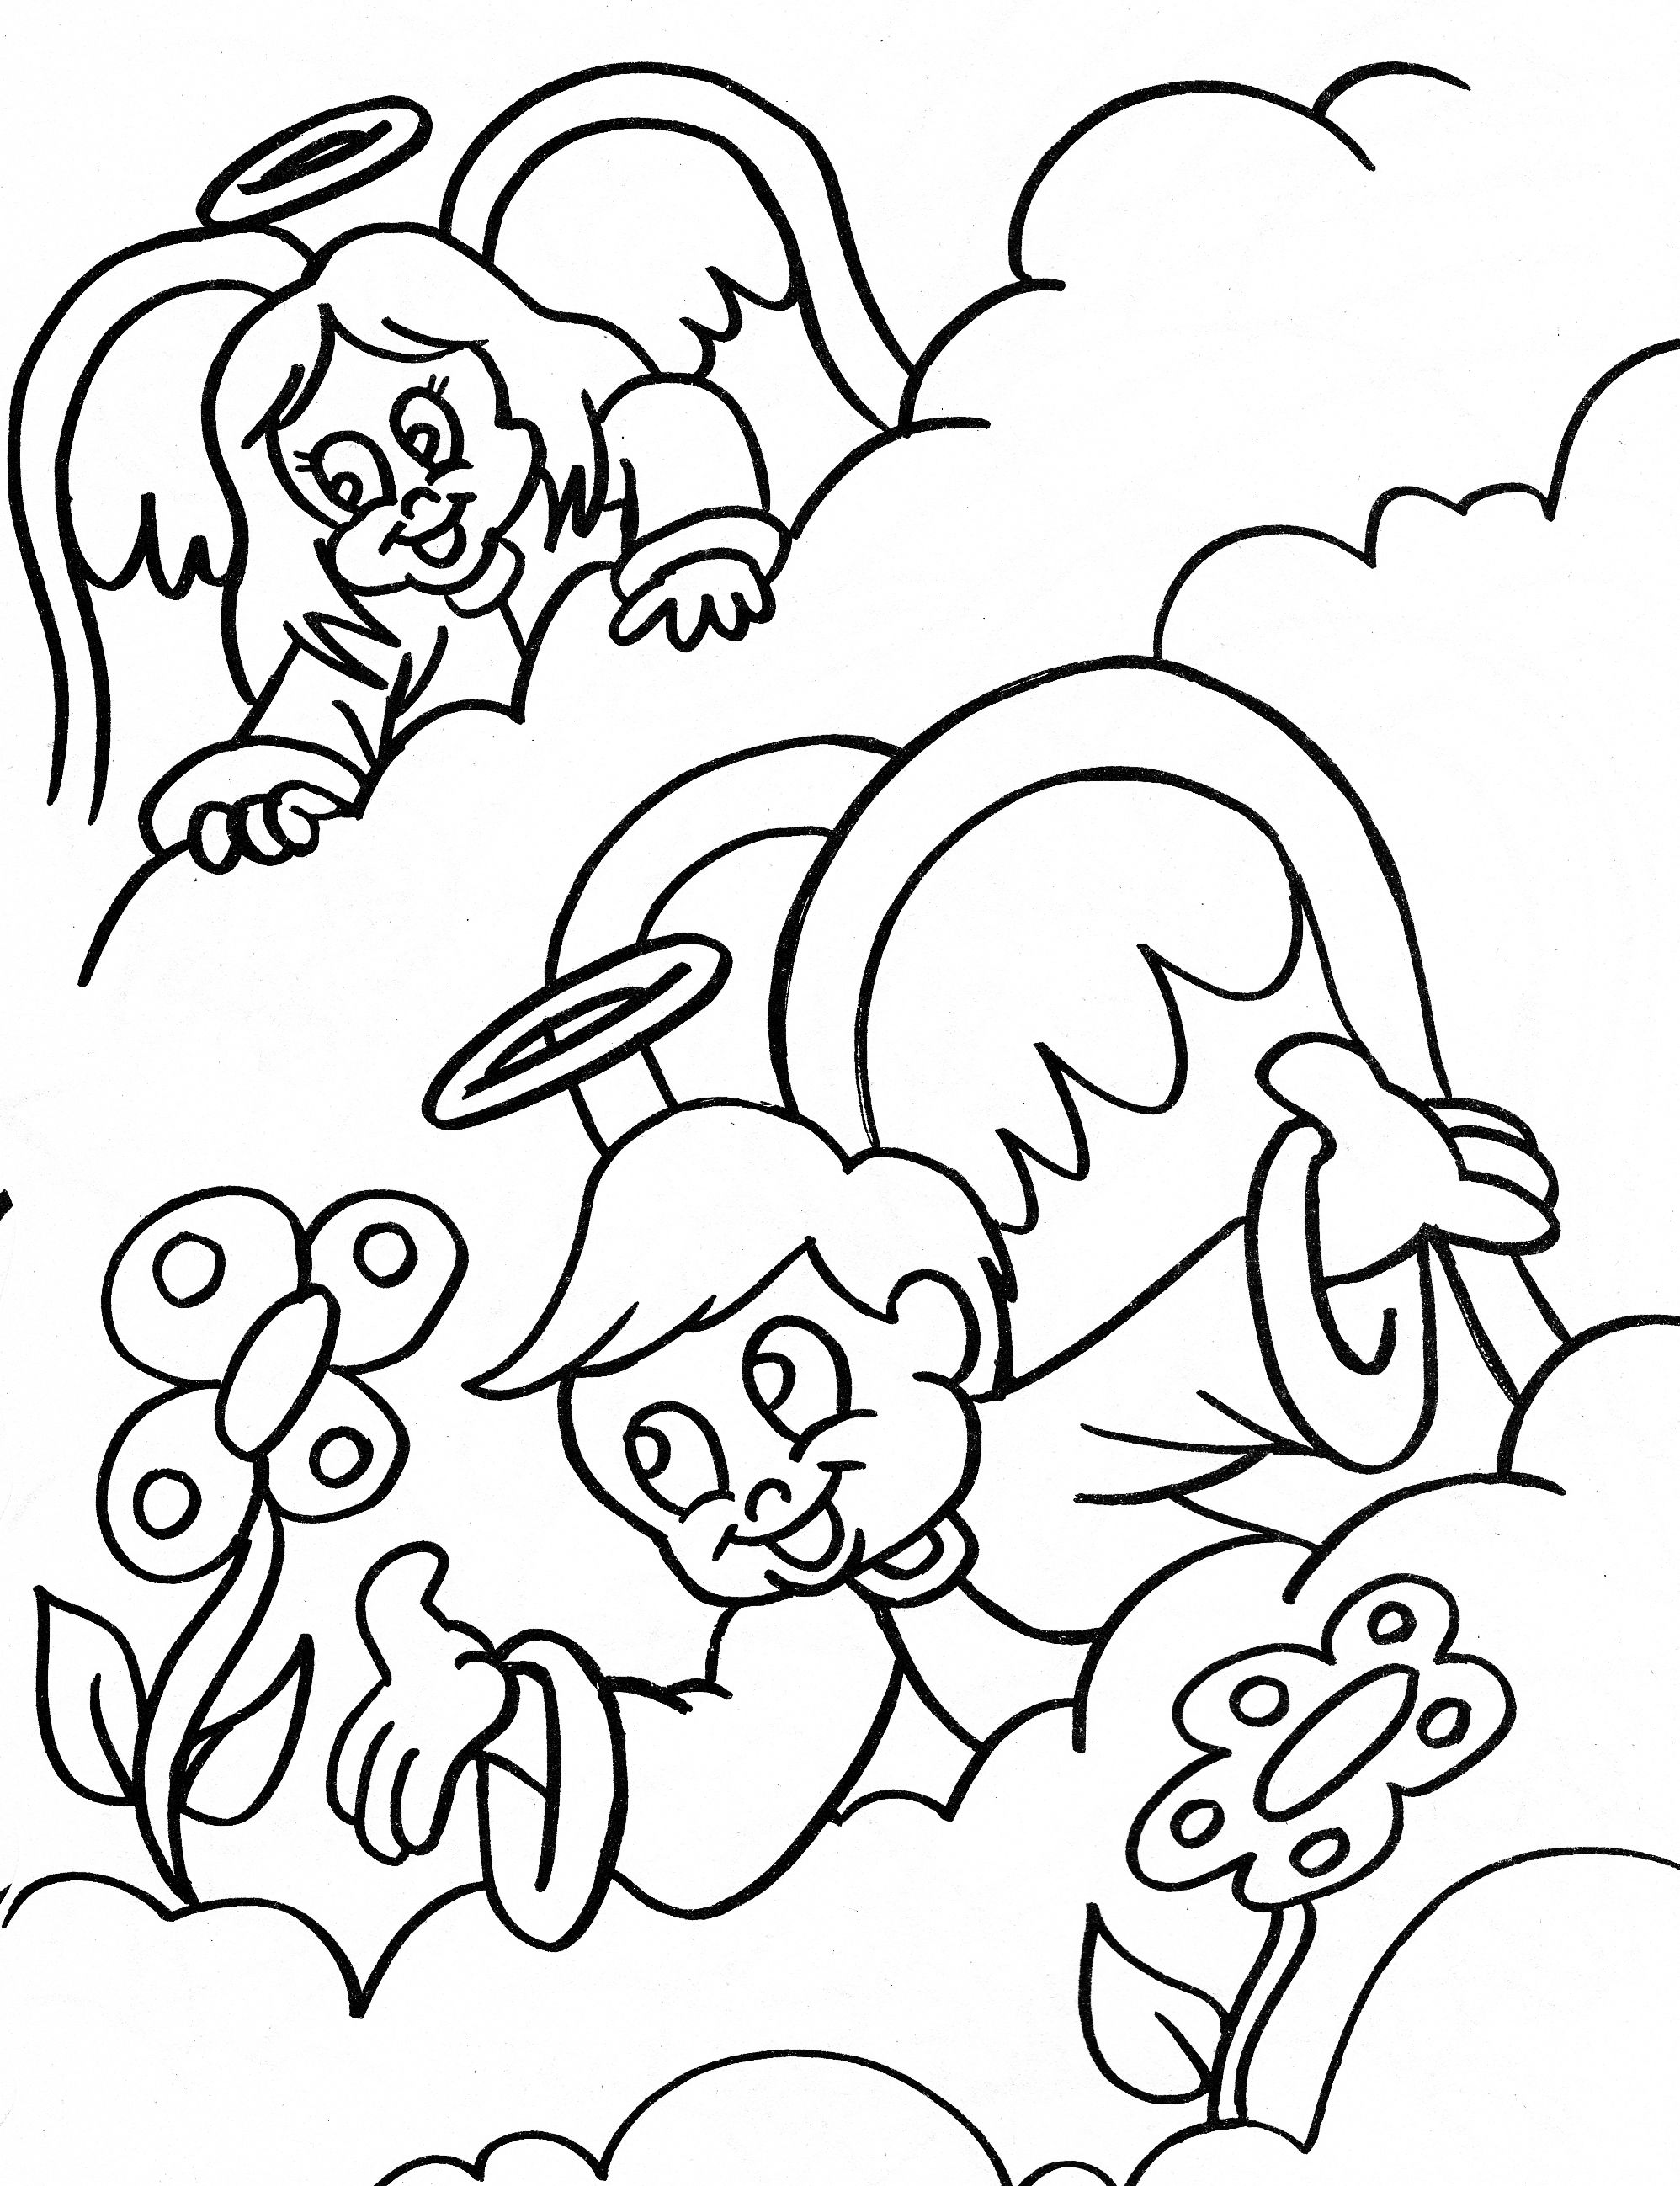 Angel Coloring Page Boy And Girl Angel And Flowers In The Clouds Angel Coloring Pages Cool Coloring Pages Coloring Pages